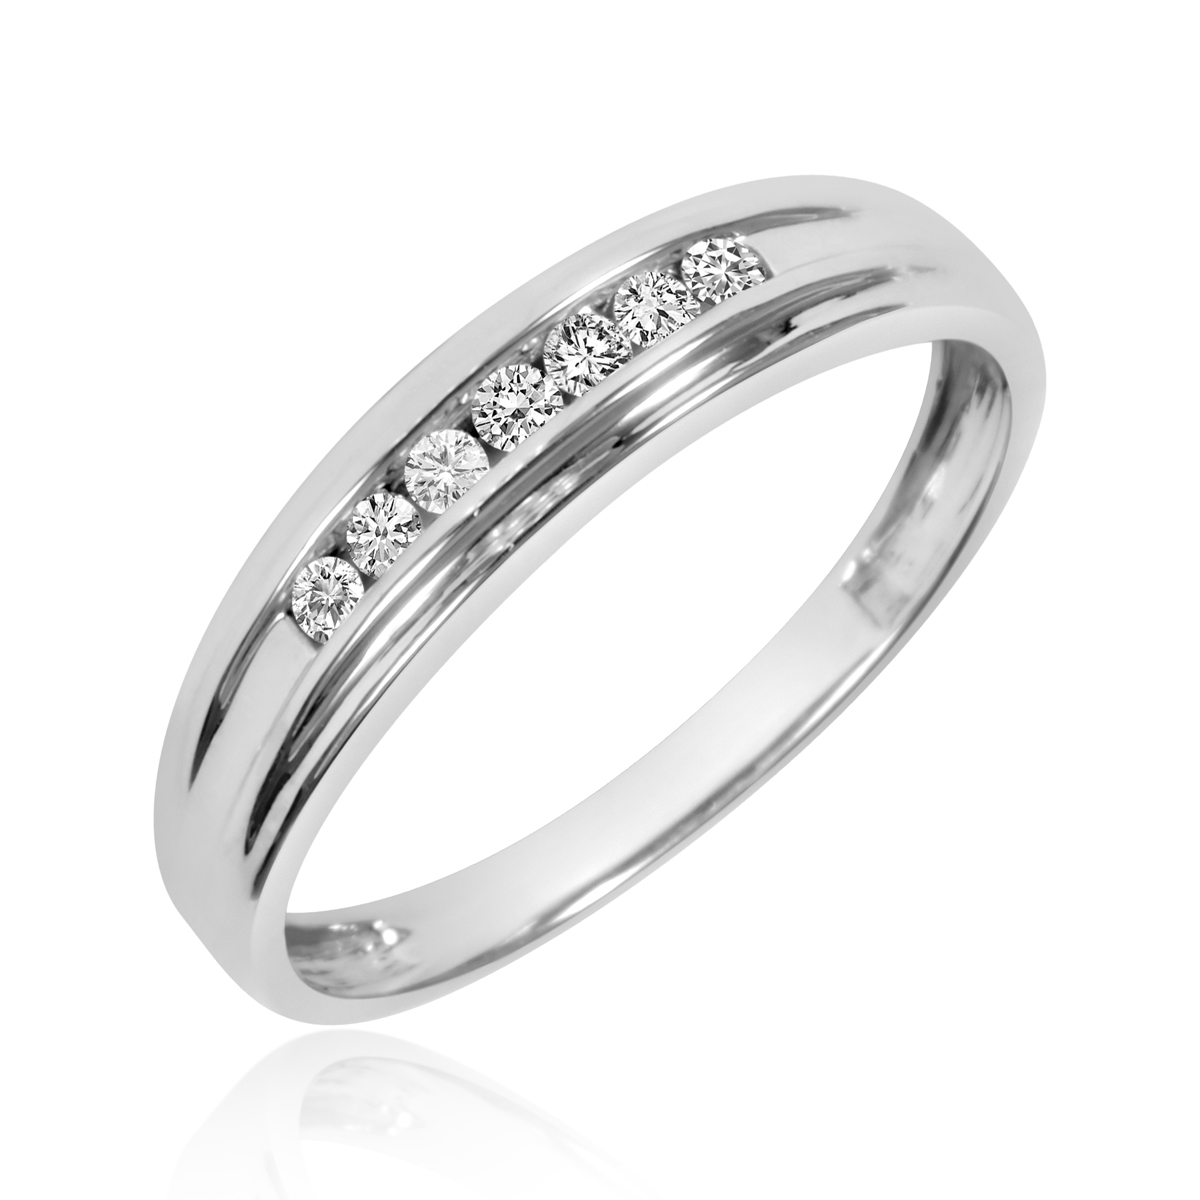 1 3 CT TW Diamond His And Hers Wedding Band Set 10K White Gold